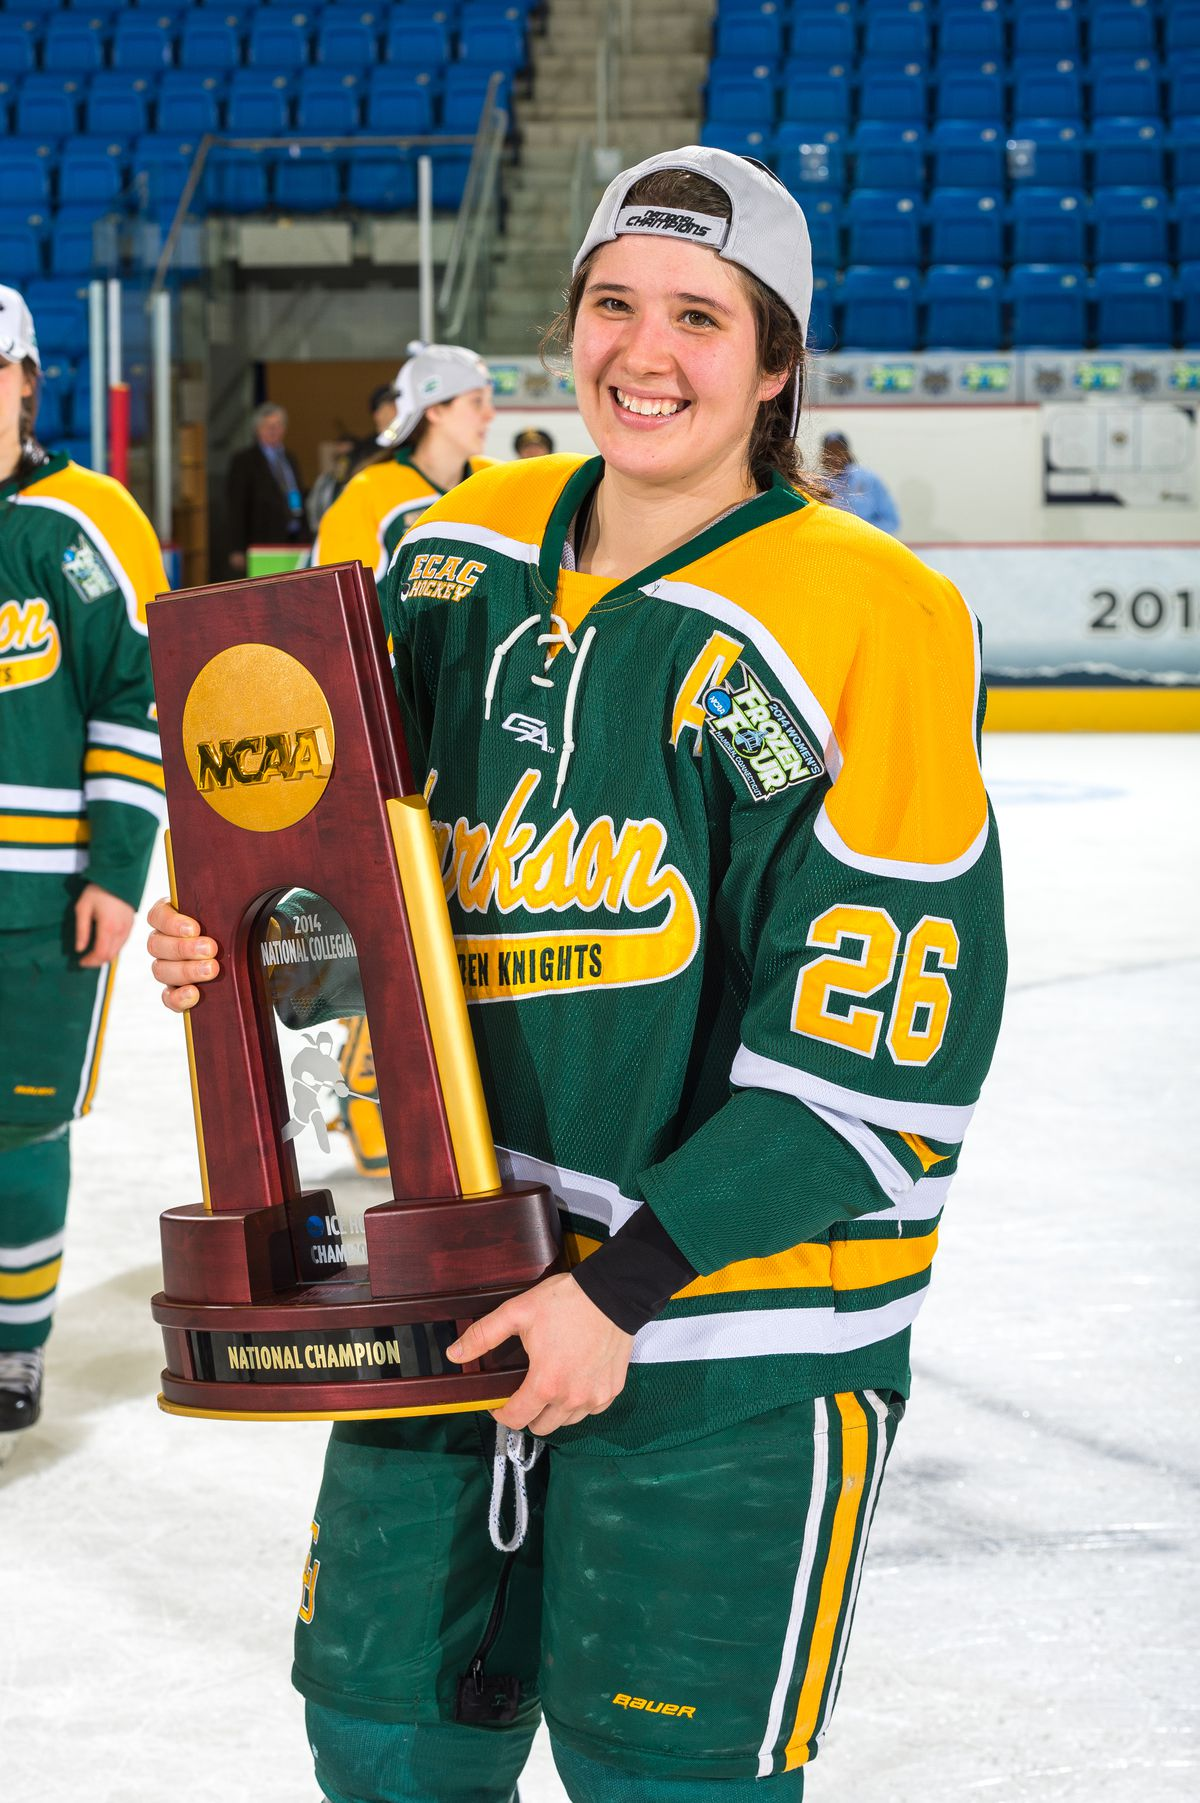 Jamie Lee Rattray poses for a photo with the national championship trophy after the 2014 NCAA title game.